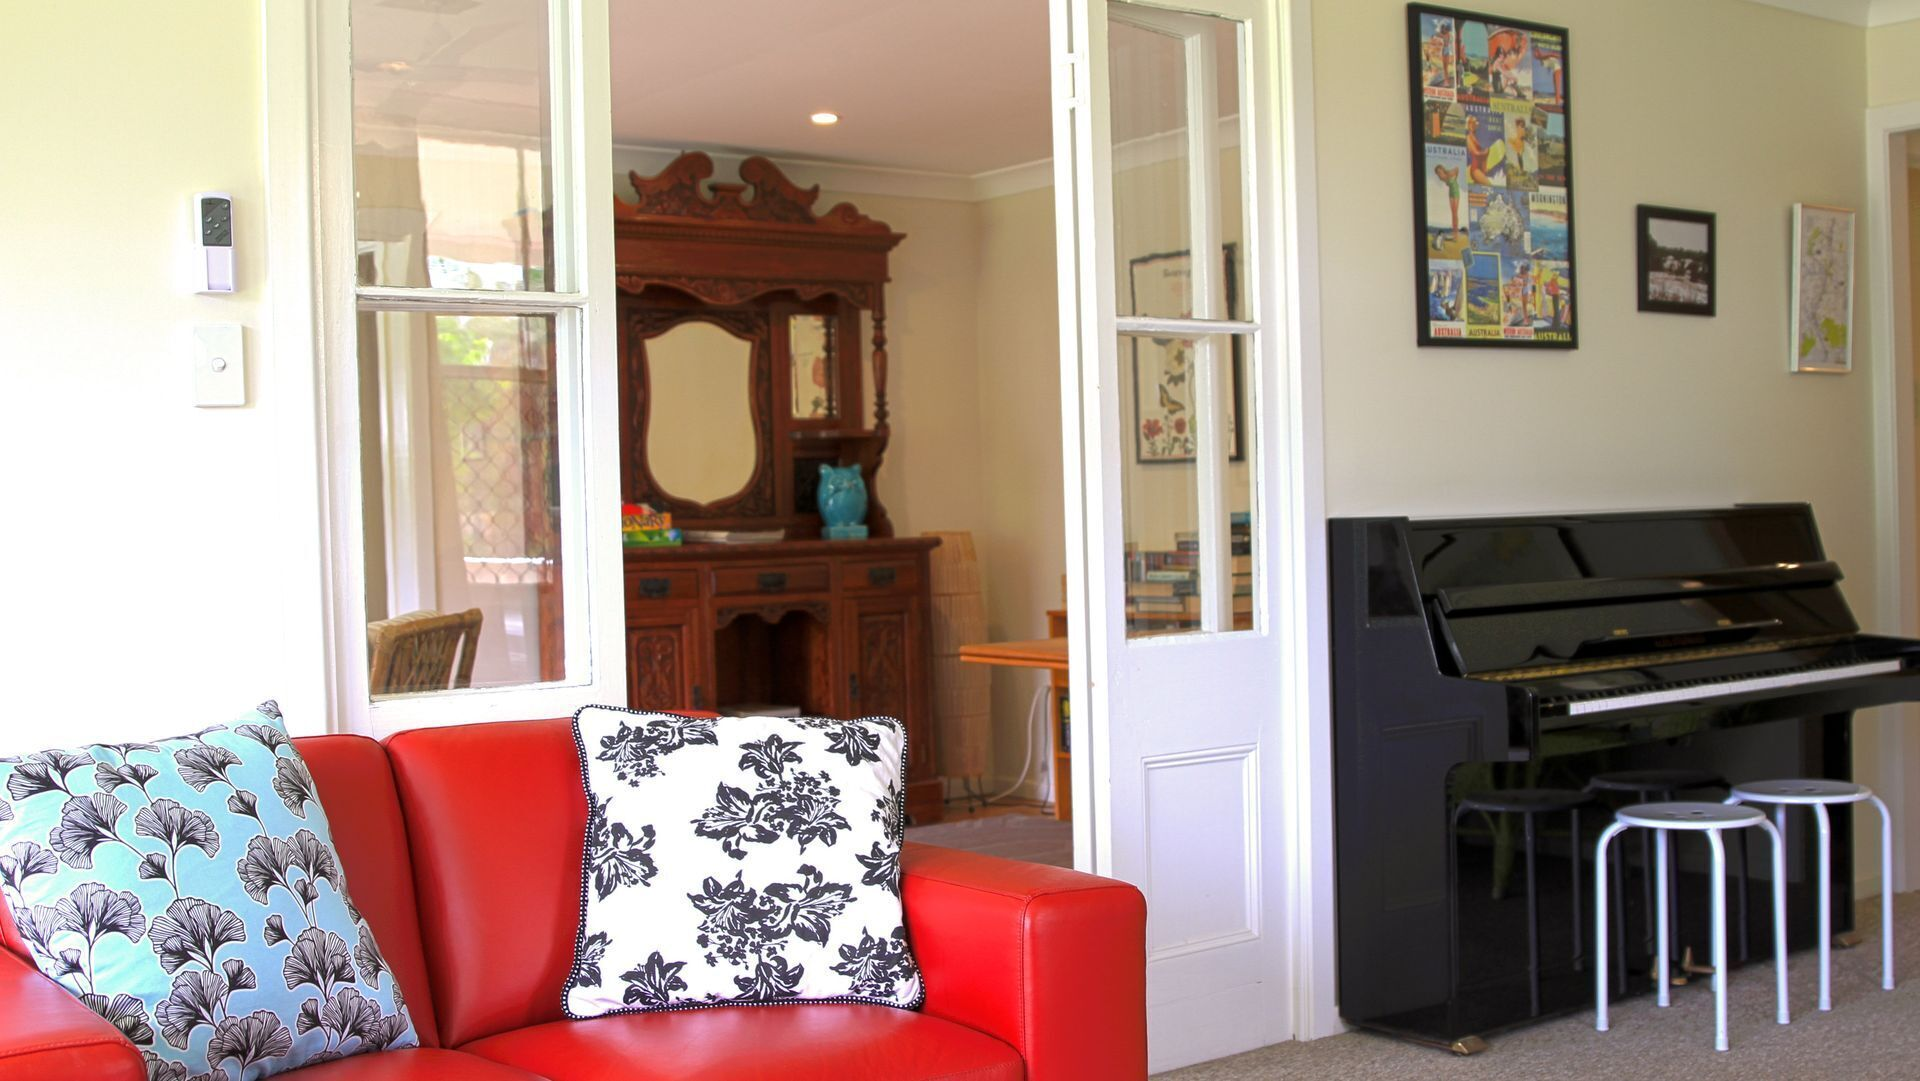 Pepper Tree - country house - repeat visits!! wonderful guest reviews!!